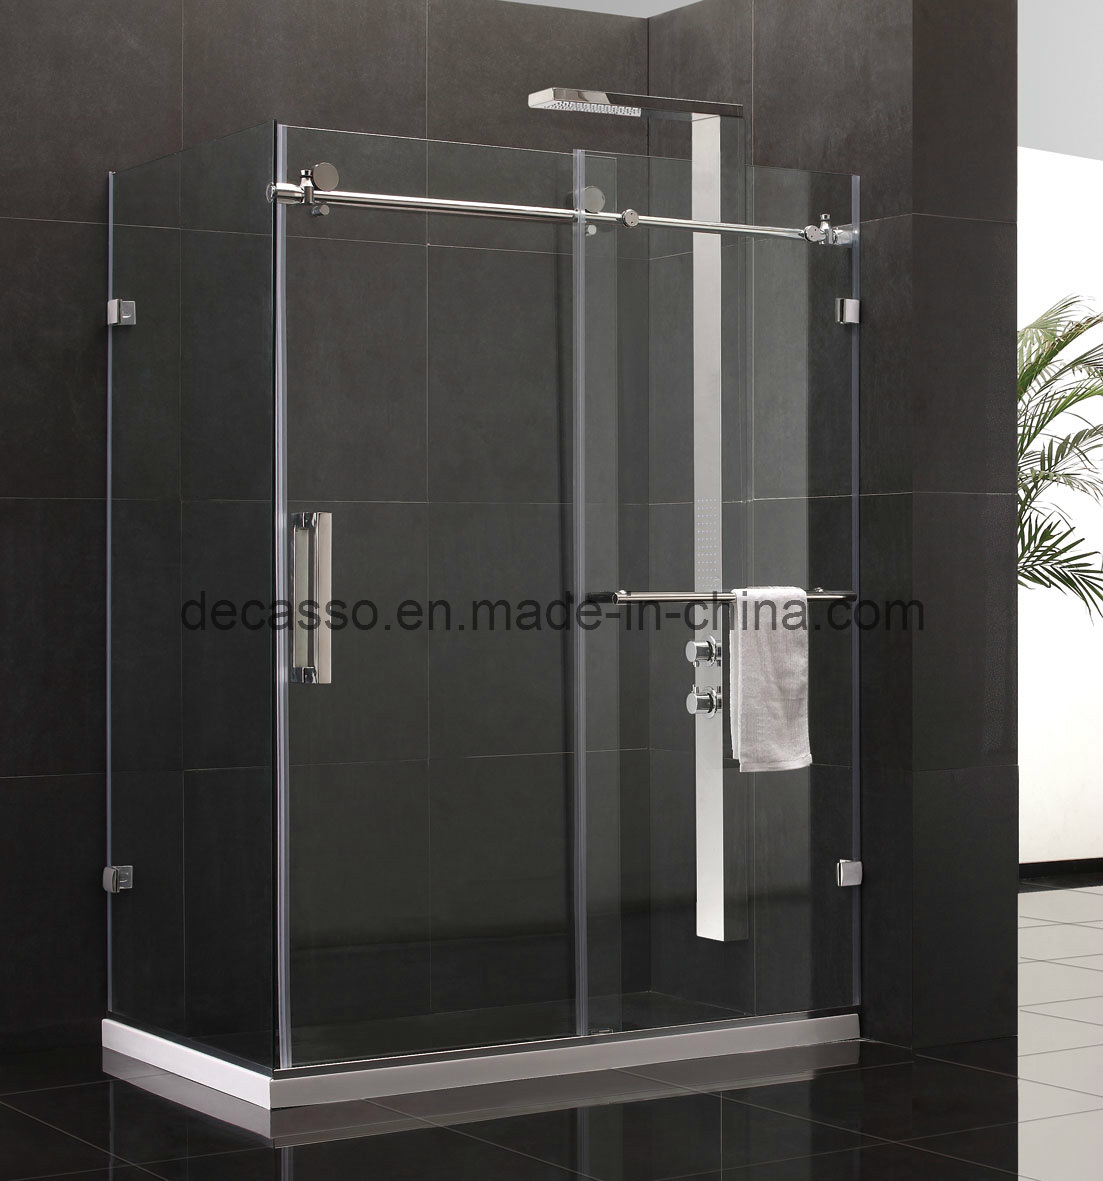 Rectangular Sliding Shower Room (DCS-Y-F)